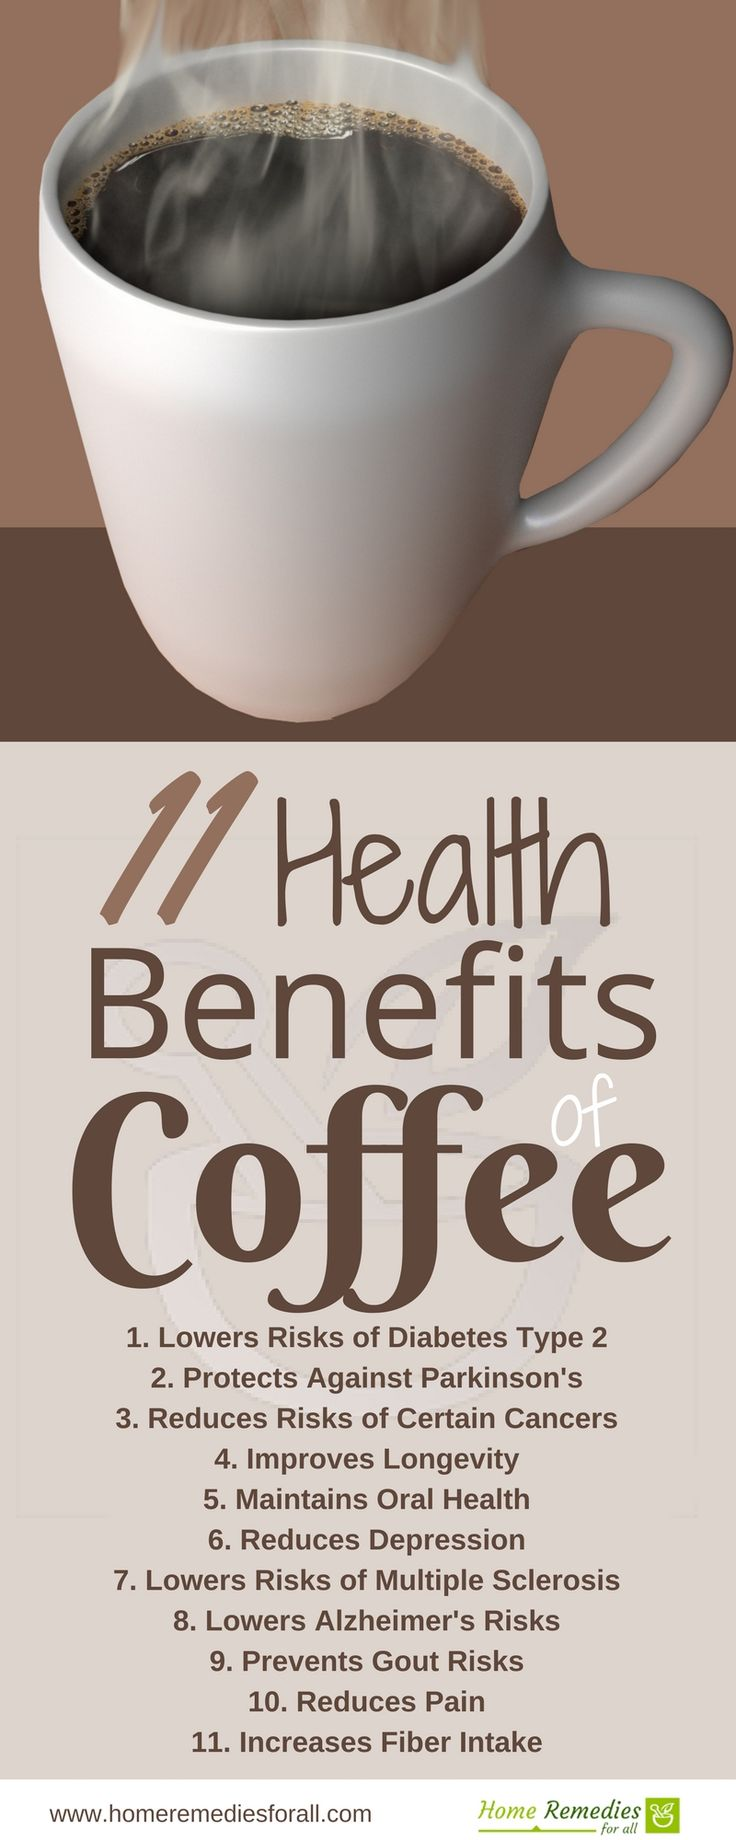 Coffee offers multiple health benefits if you drink 2-6 cups daily.